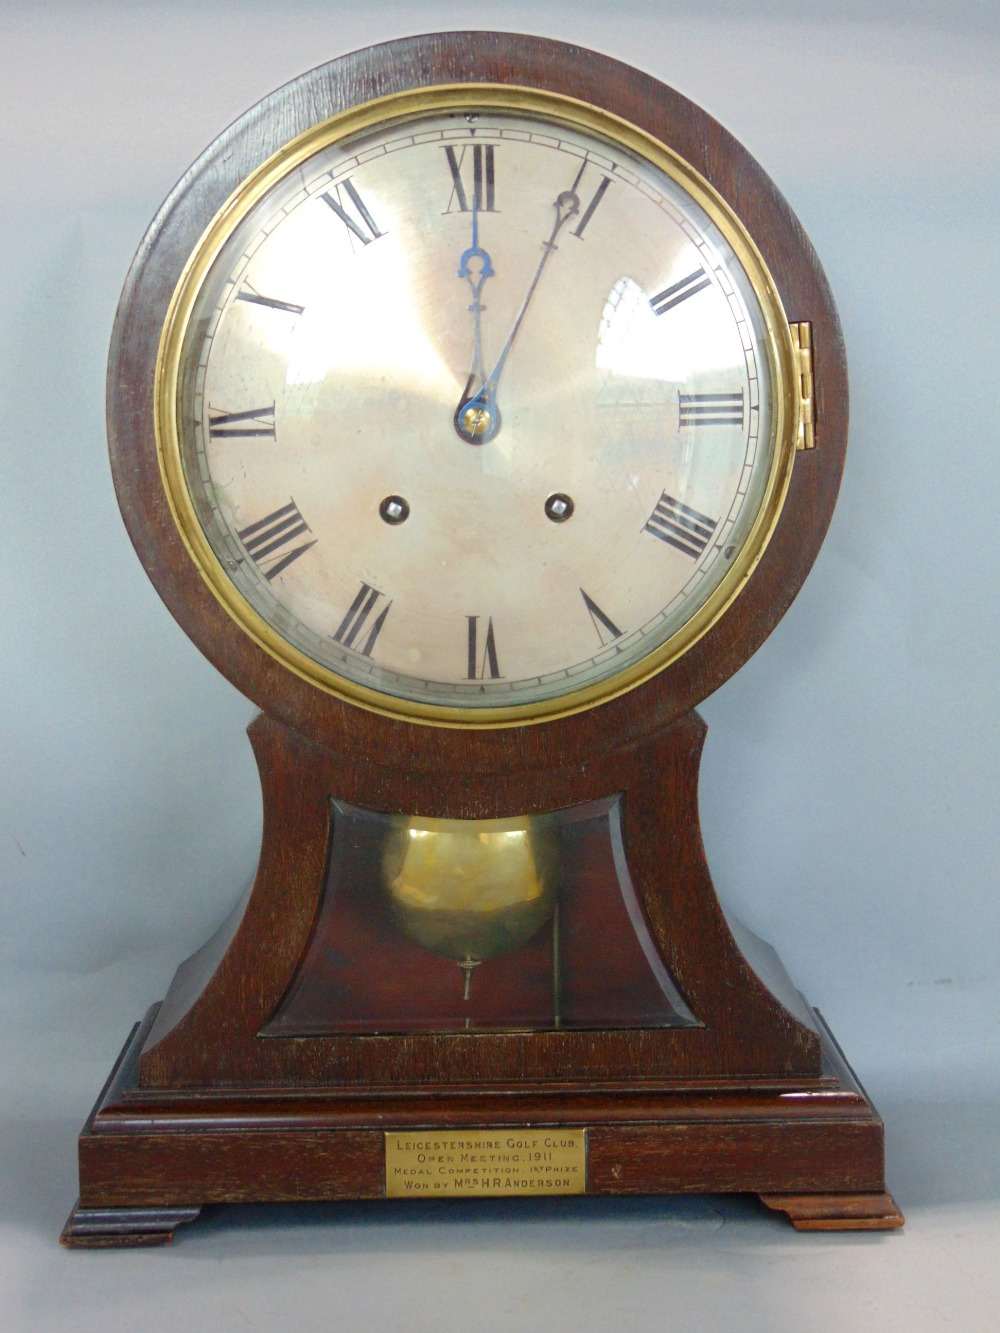 Lot 575 - Early 20th century two train mahogany balloon head mantel clock, the silver dial with engraved Roman